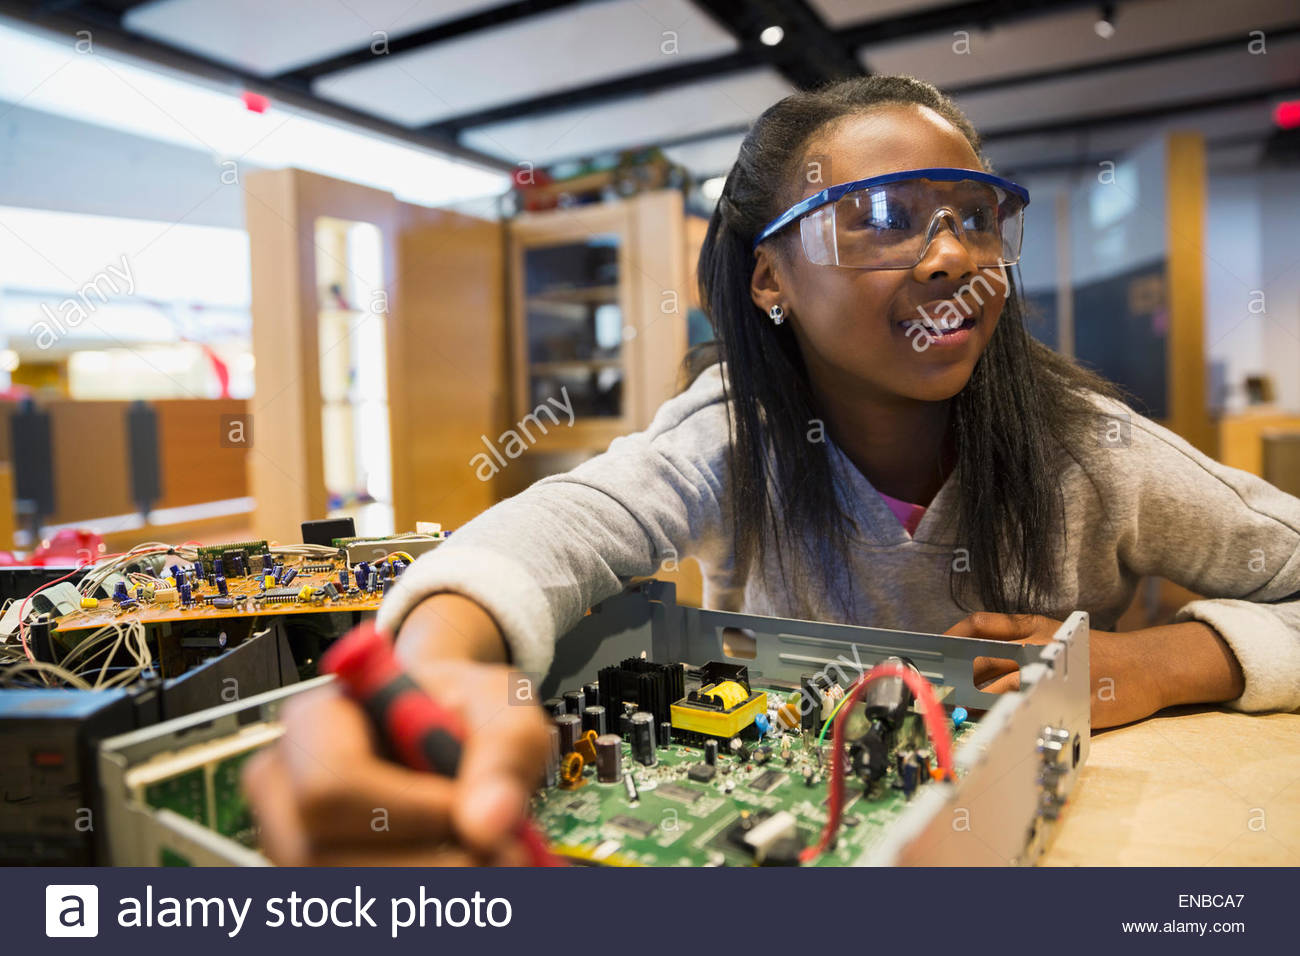 Girl goggles assembling electronics circuit at science center Stock Photo